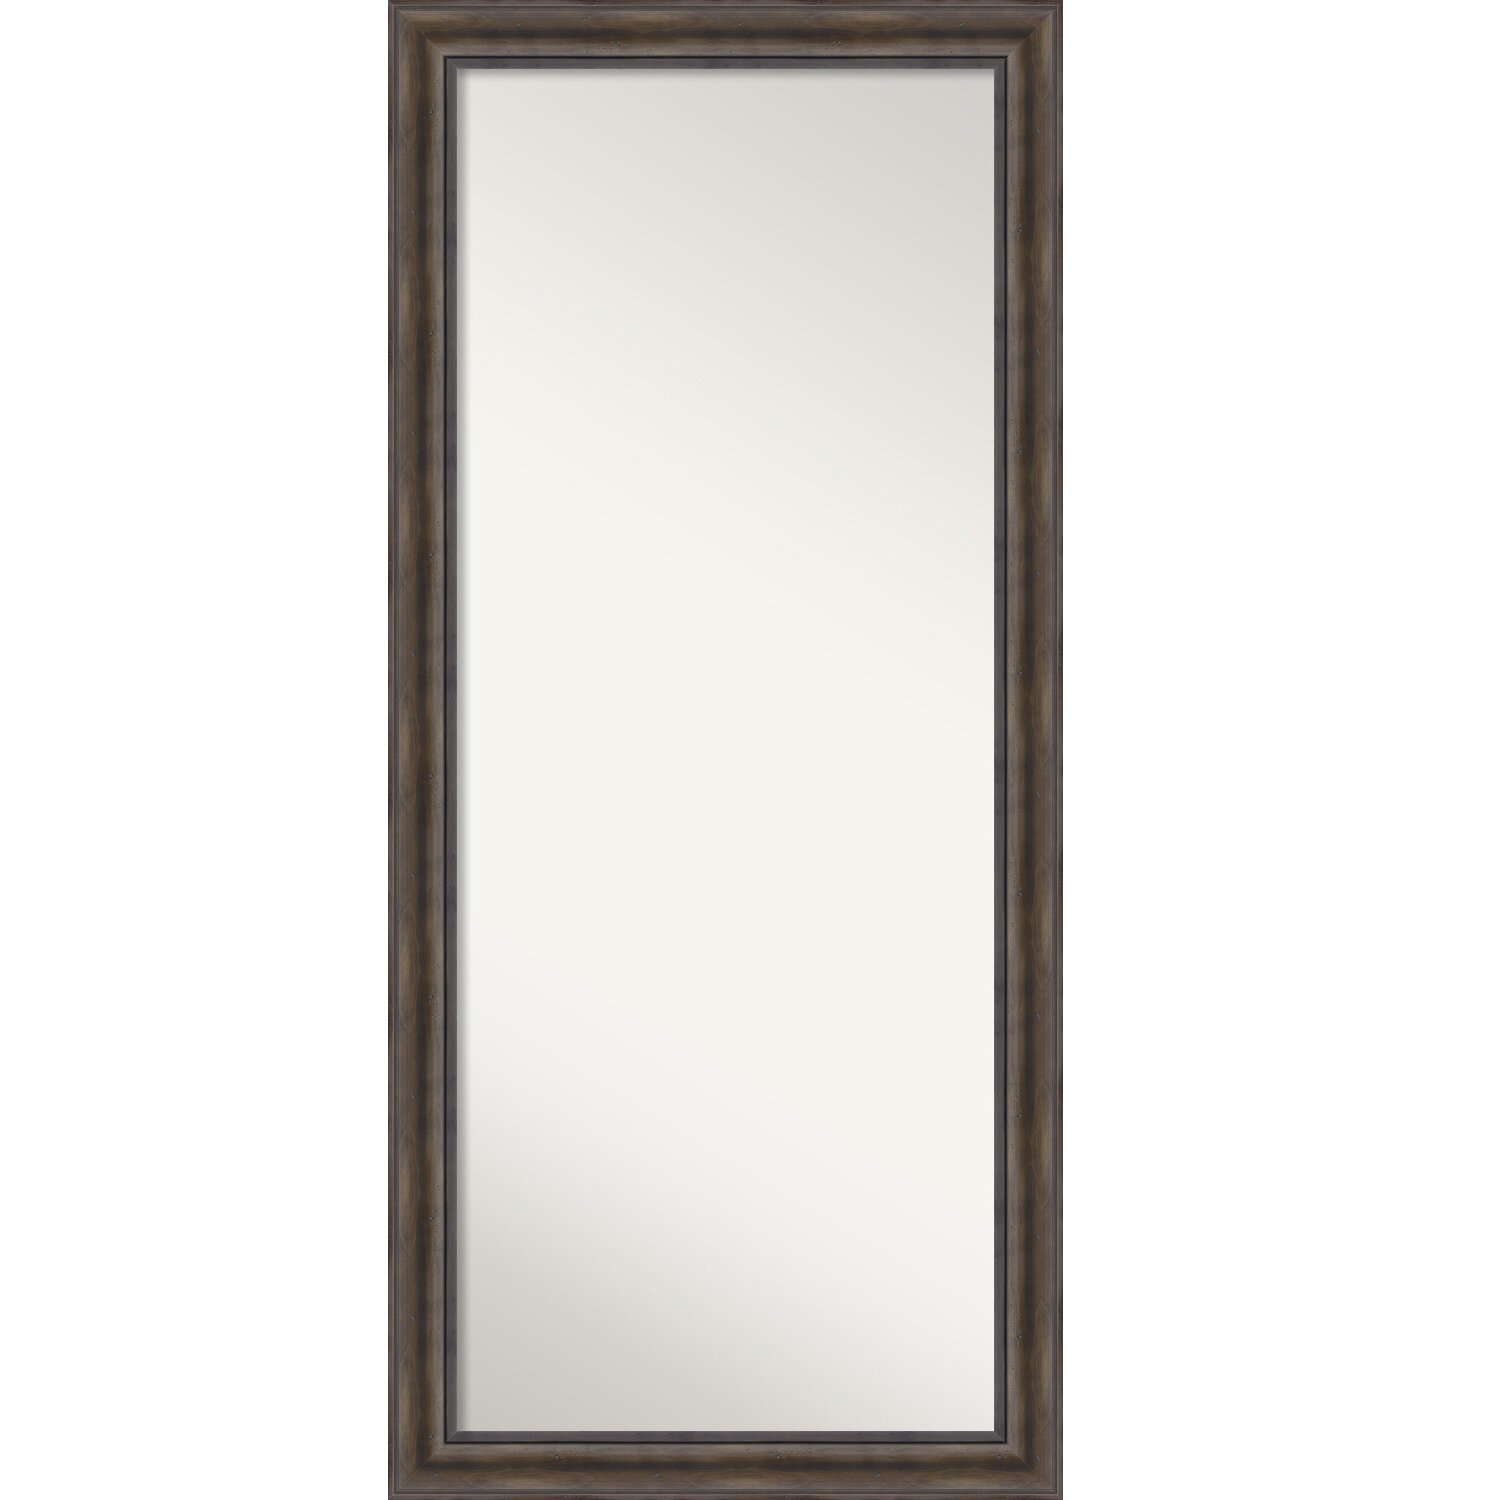 Loon peak rockwood rustic pine floor wall mirror wayfair for Floor wall mirror